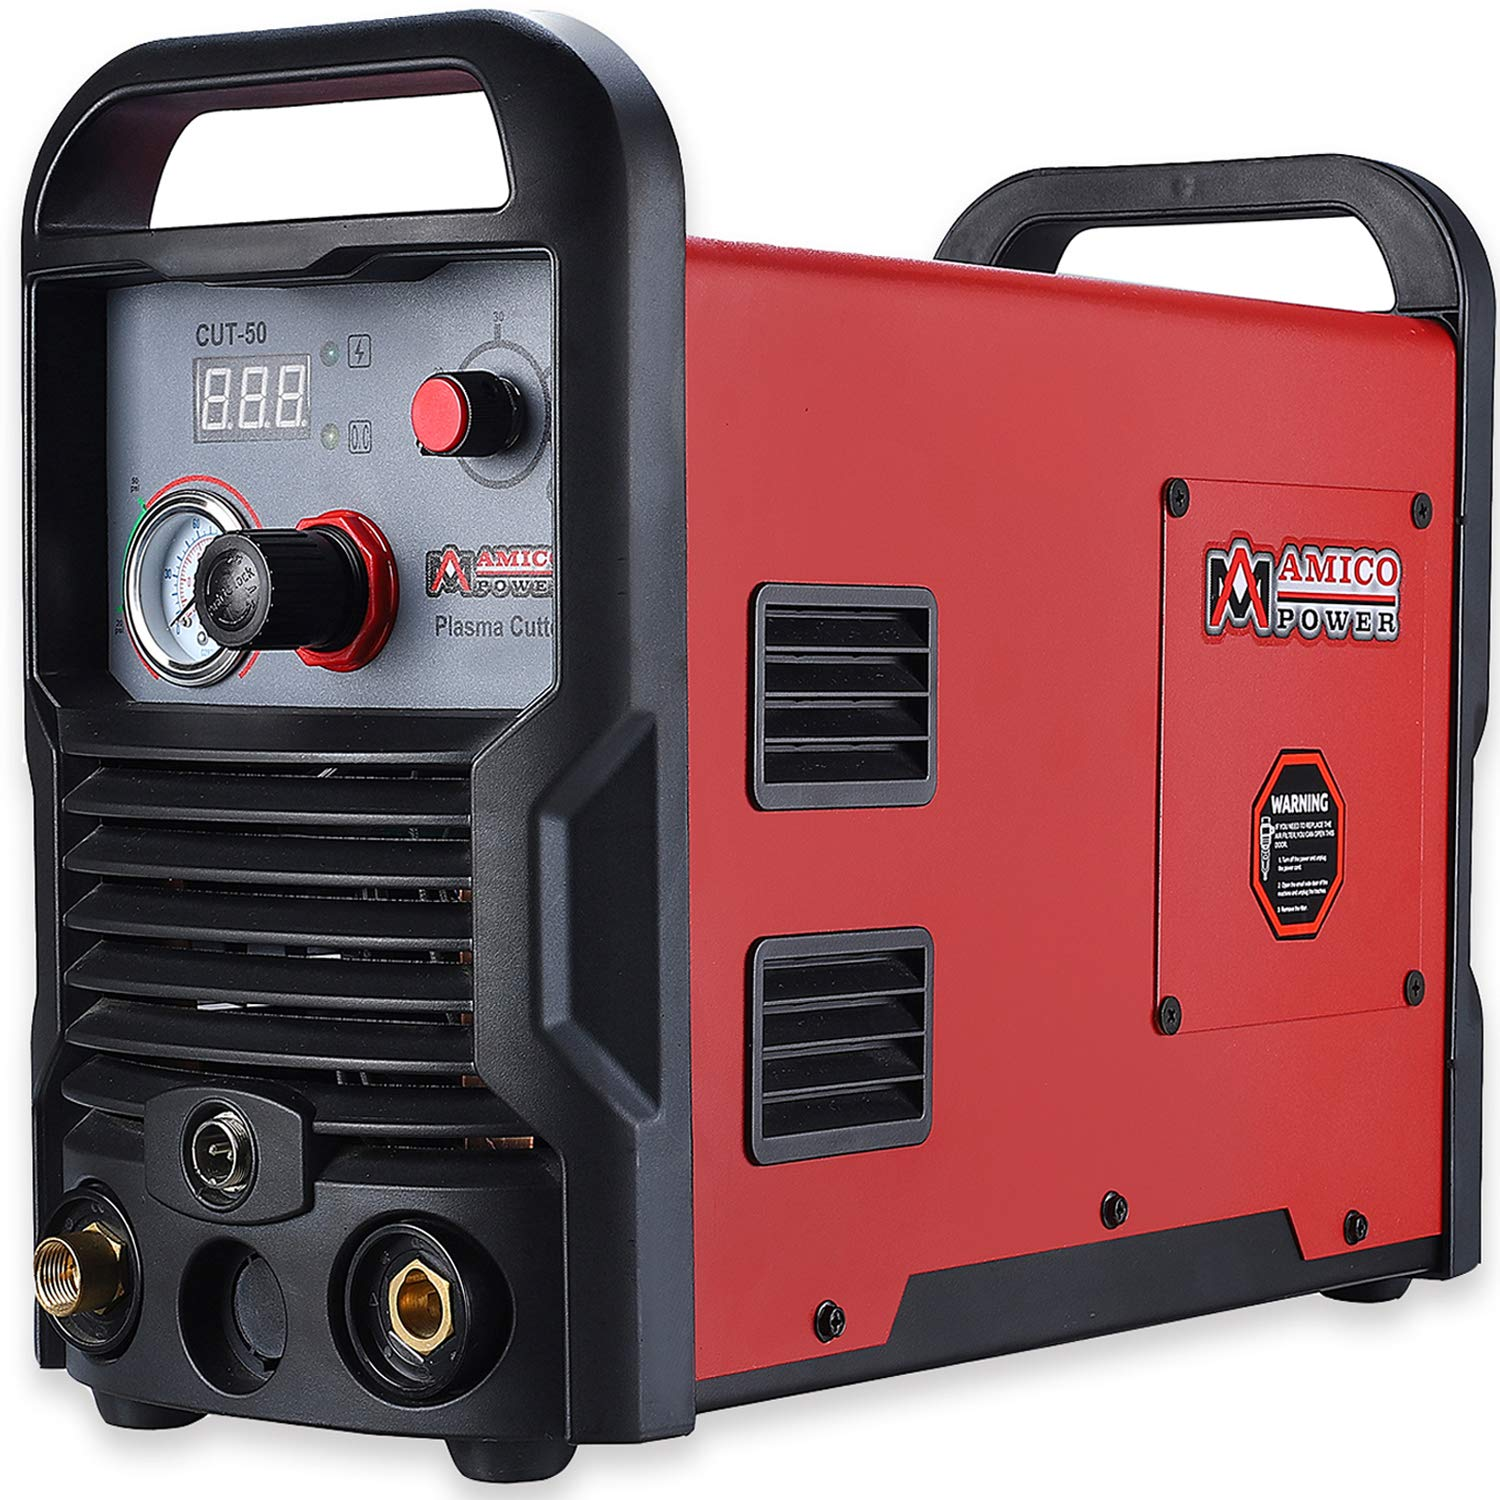 CUT-50, 50 Amp Pro. Plasma Cutter, DC Inverter 110/230V Dual Voltage Cutting Machine New by Amico (Image #1)